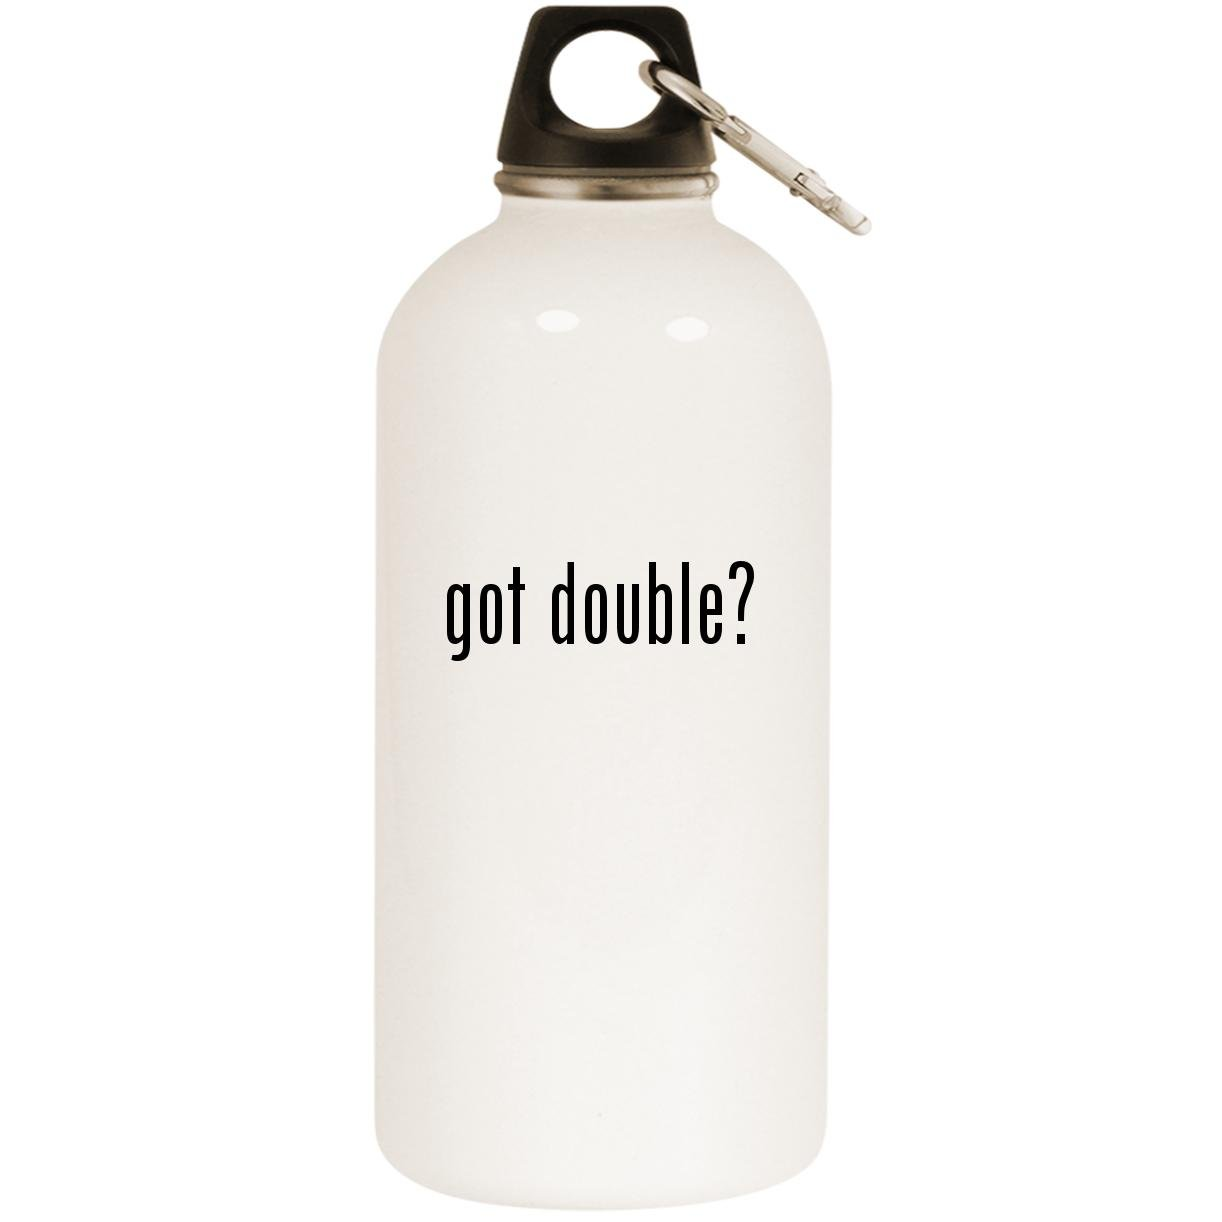 Molandra Products got Double? - White 20oz Stainless Steel Water Bottle with Carabiner